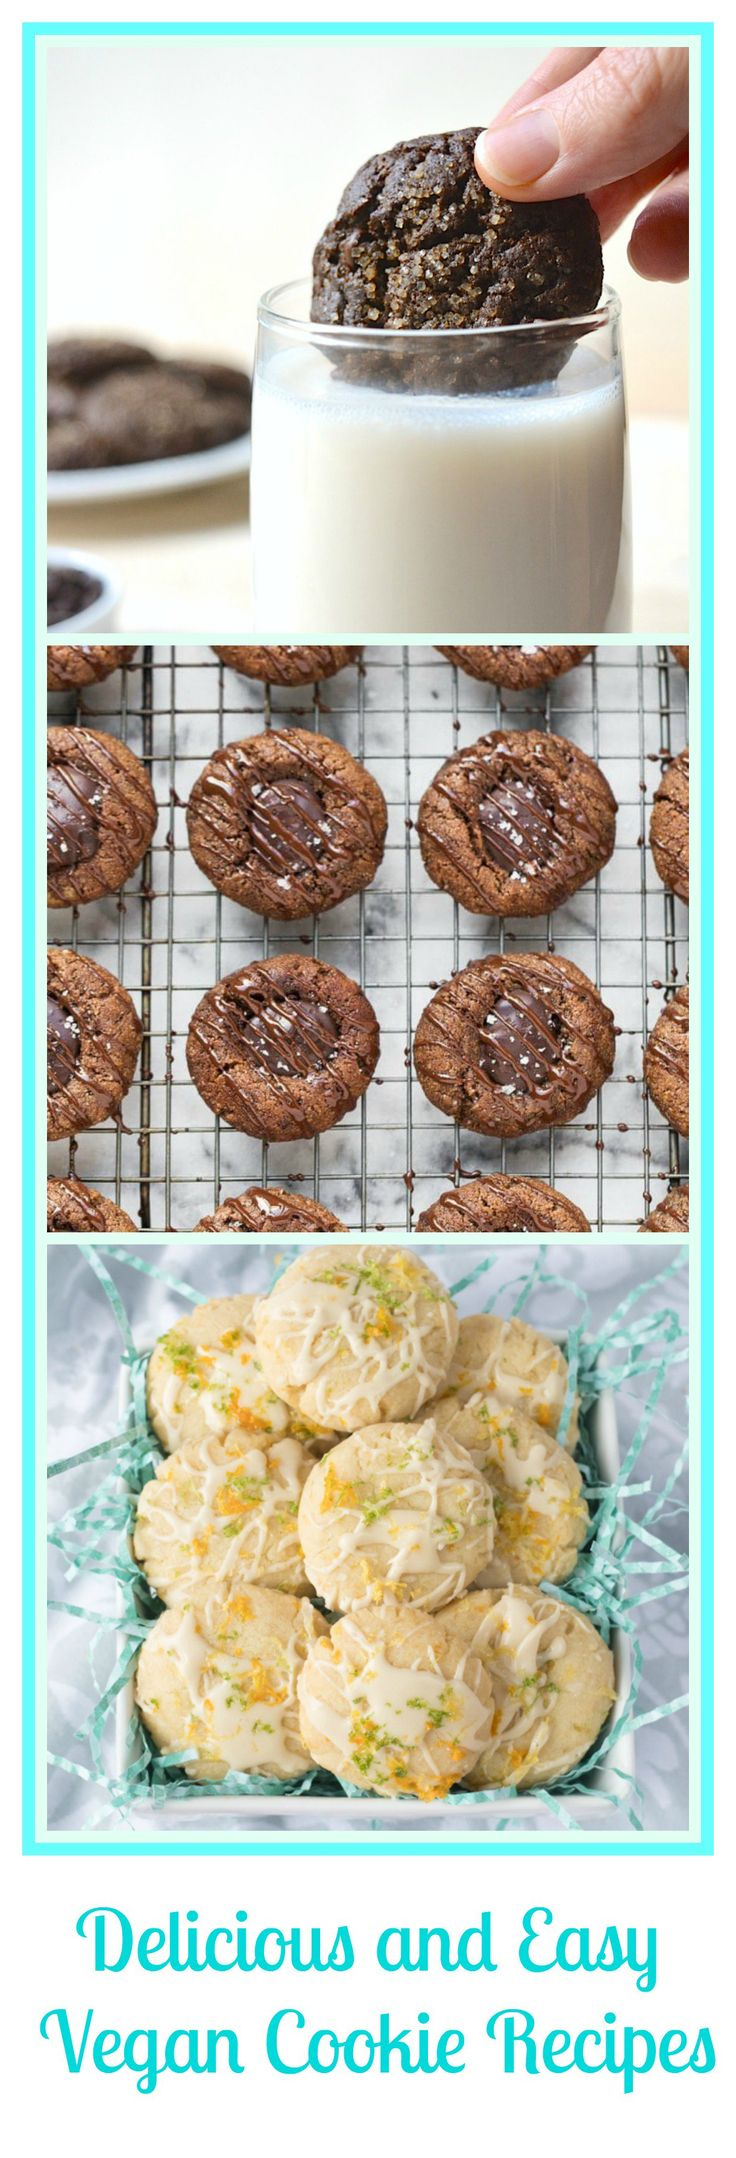 Delicious and Easy Vegan Cookie Recipes